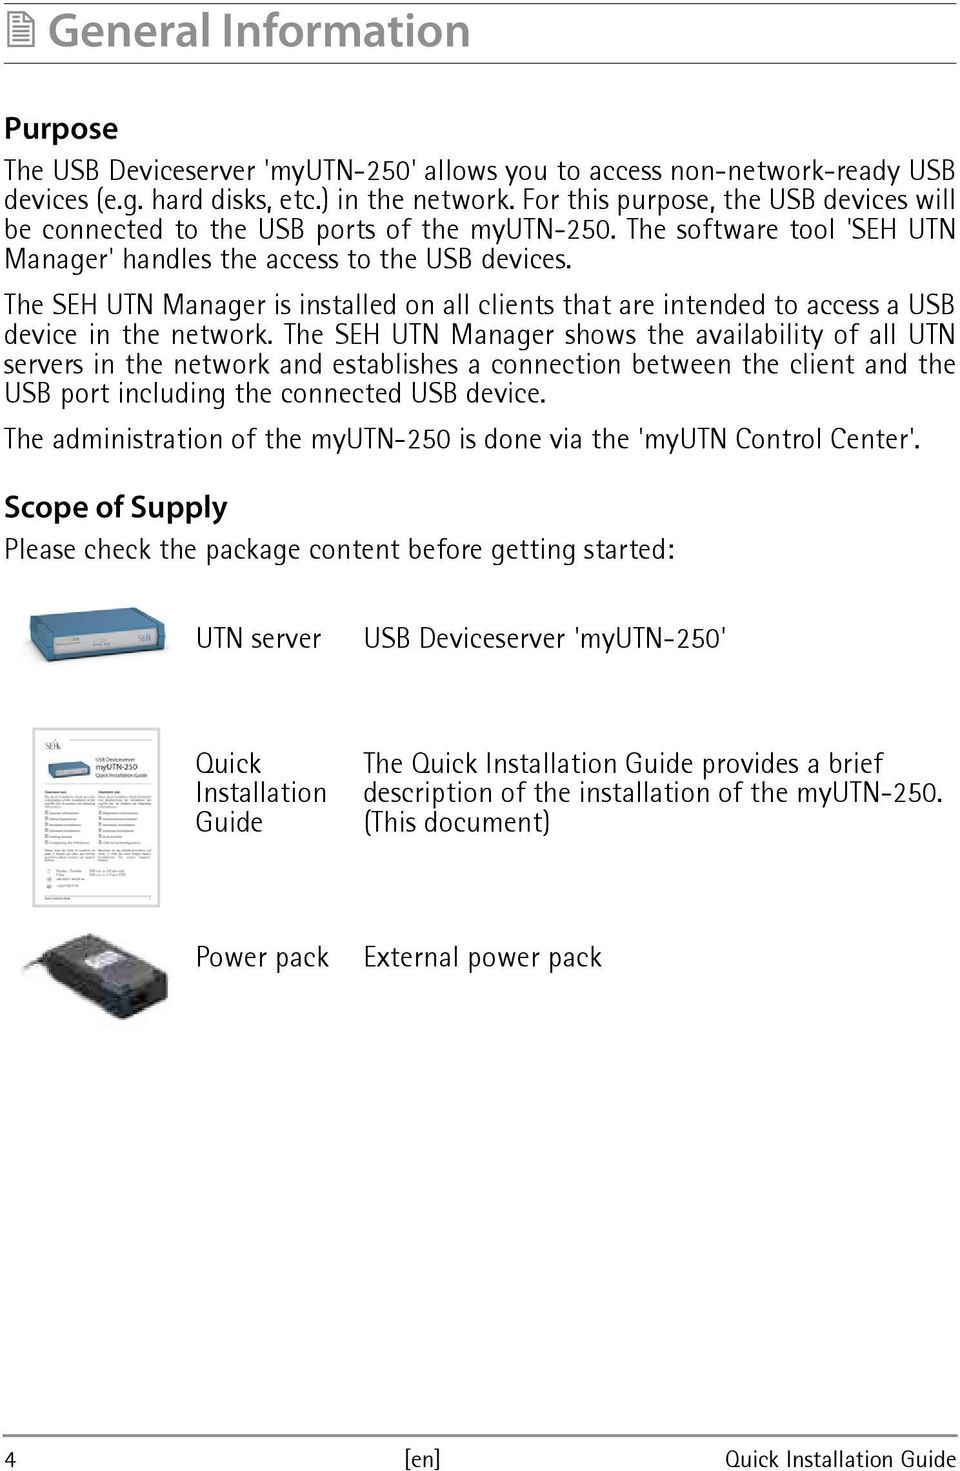 The SEH UTN Manager is installed on all clients that are intended to access a USB device in the network.